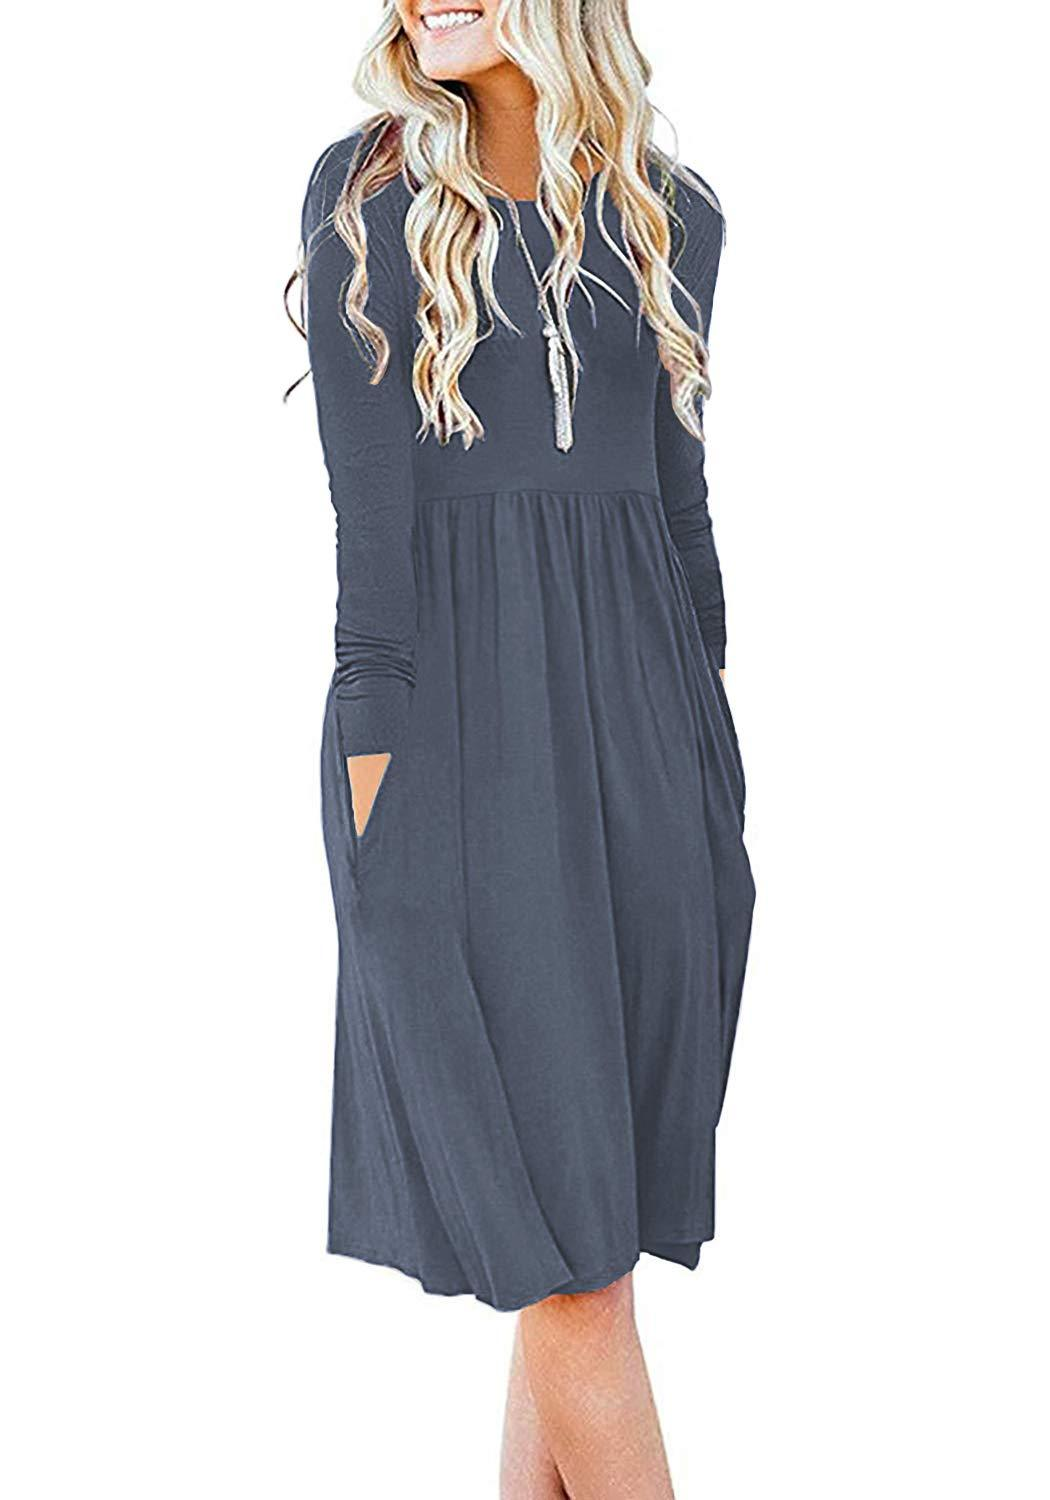 Empire Waist Loose Dress with Pockets